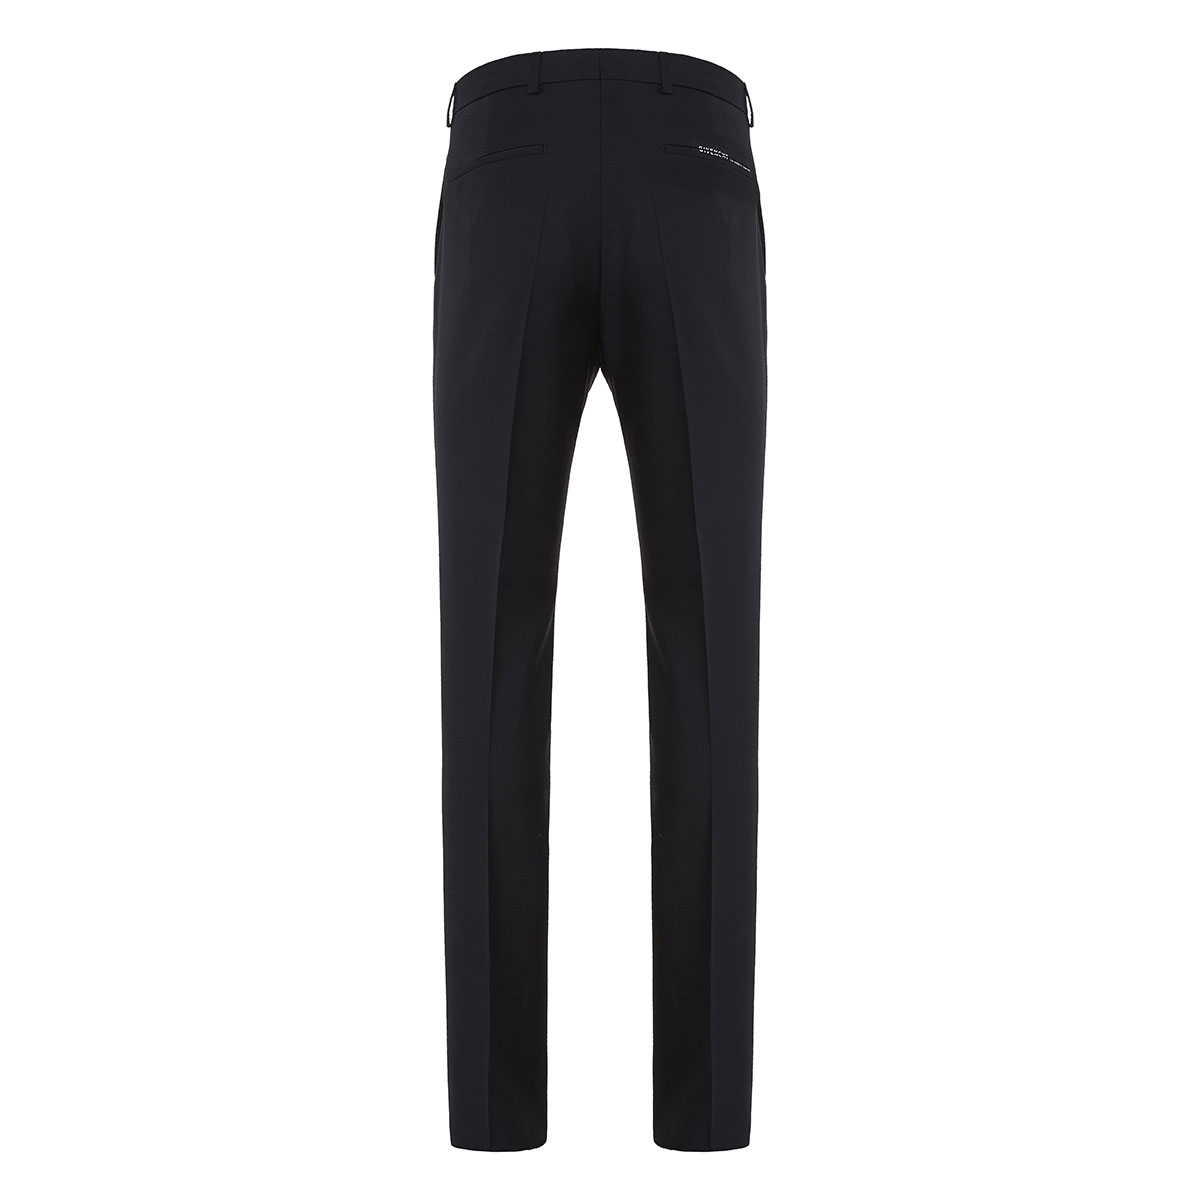 Wool tailored trousers